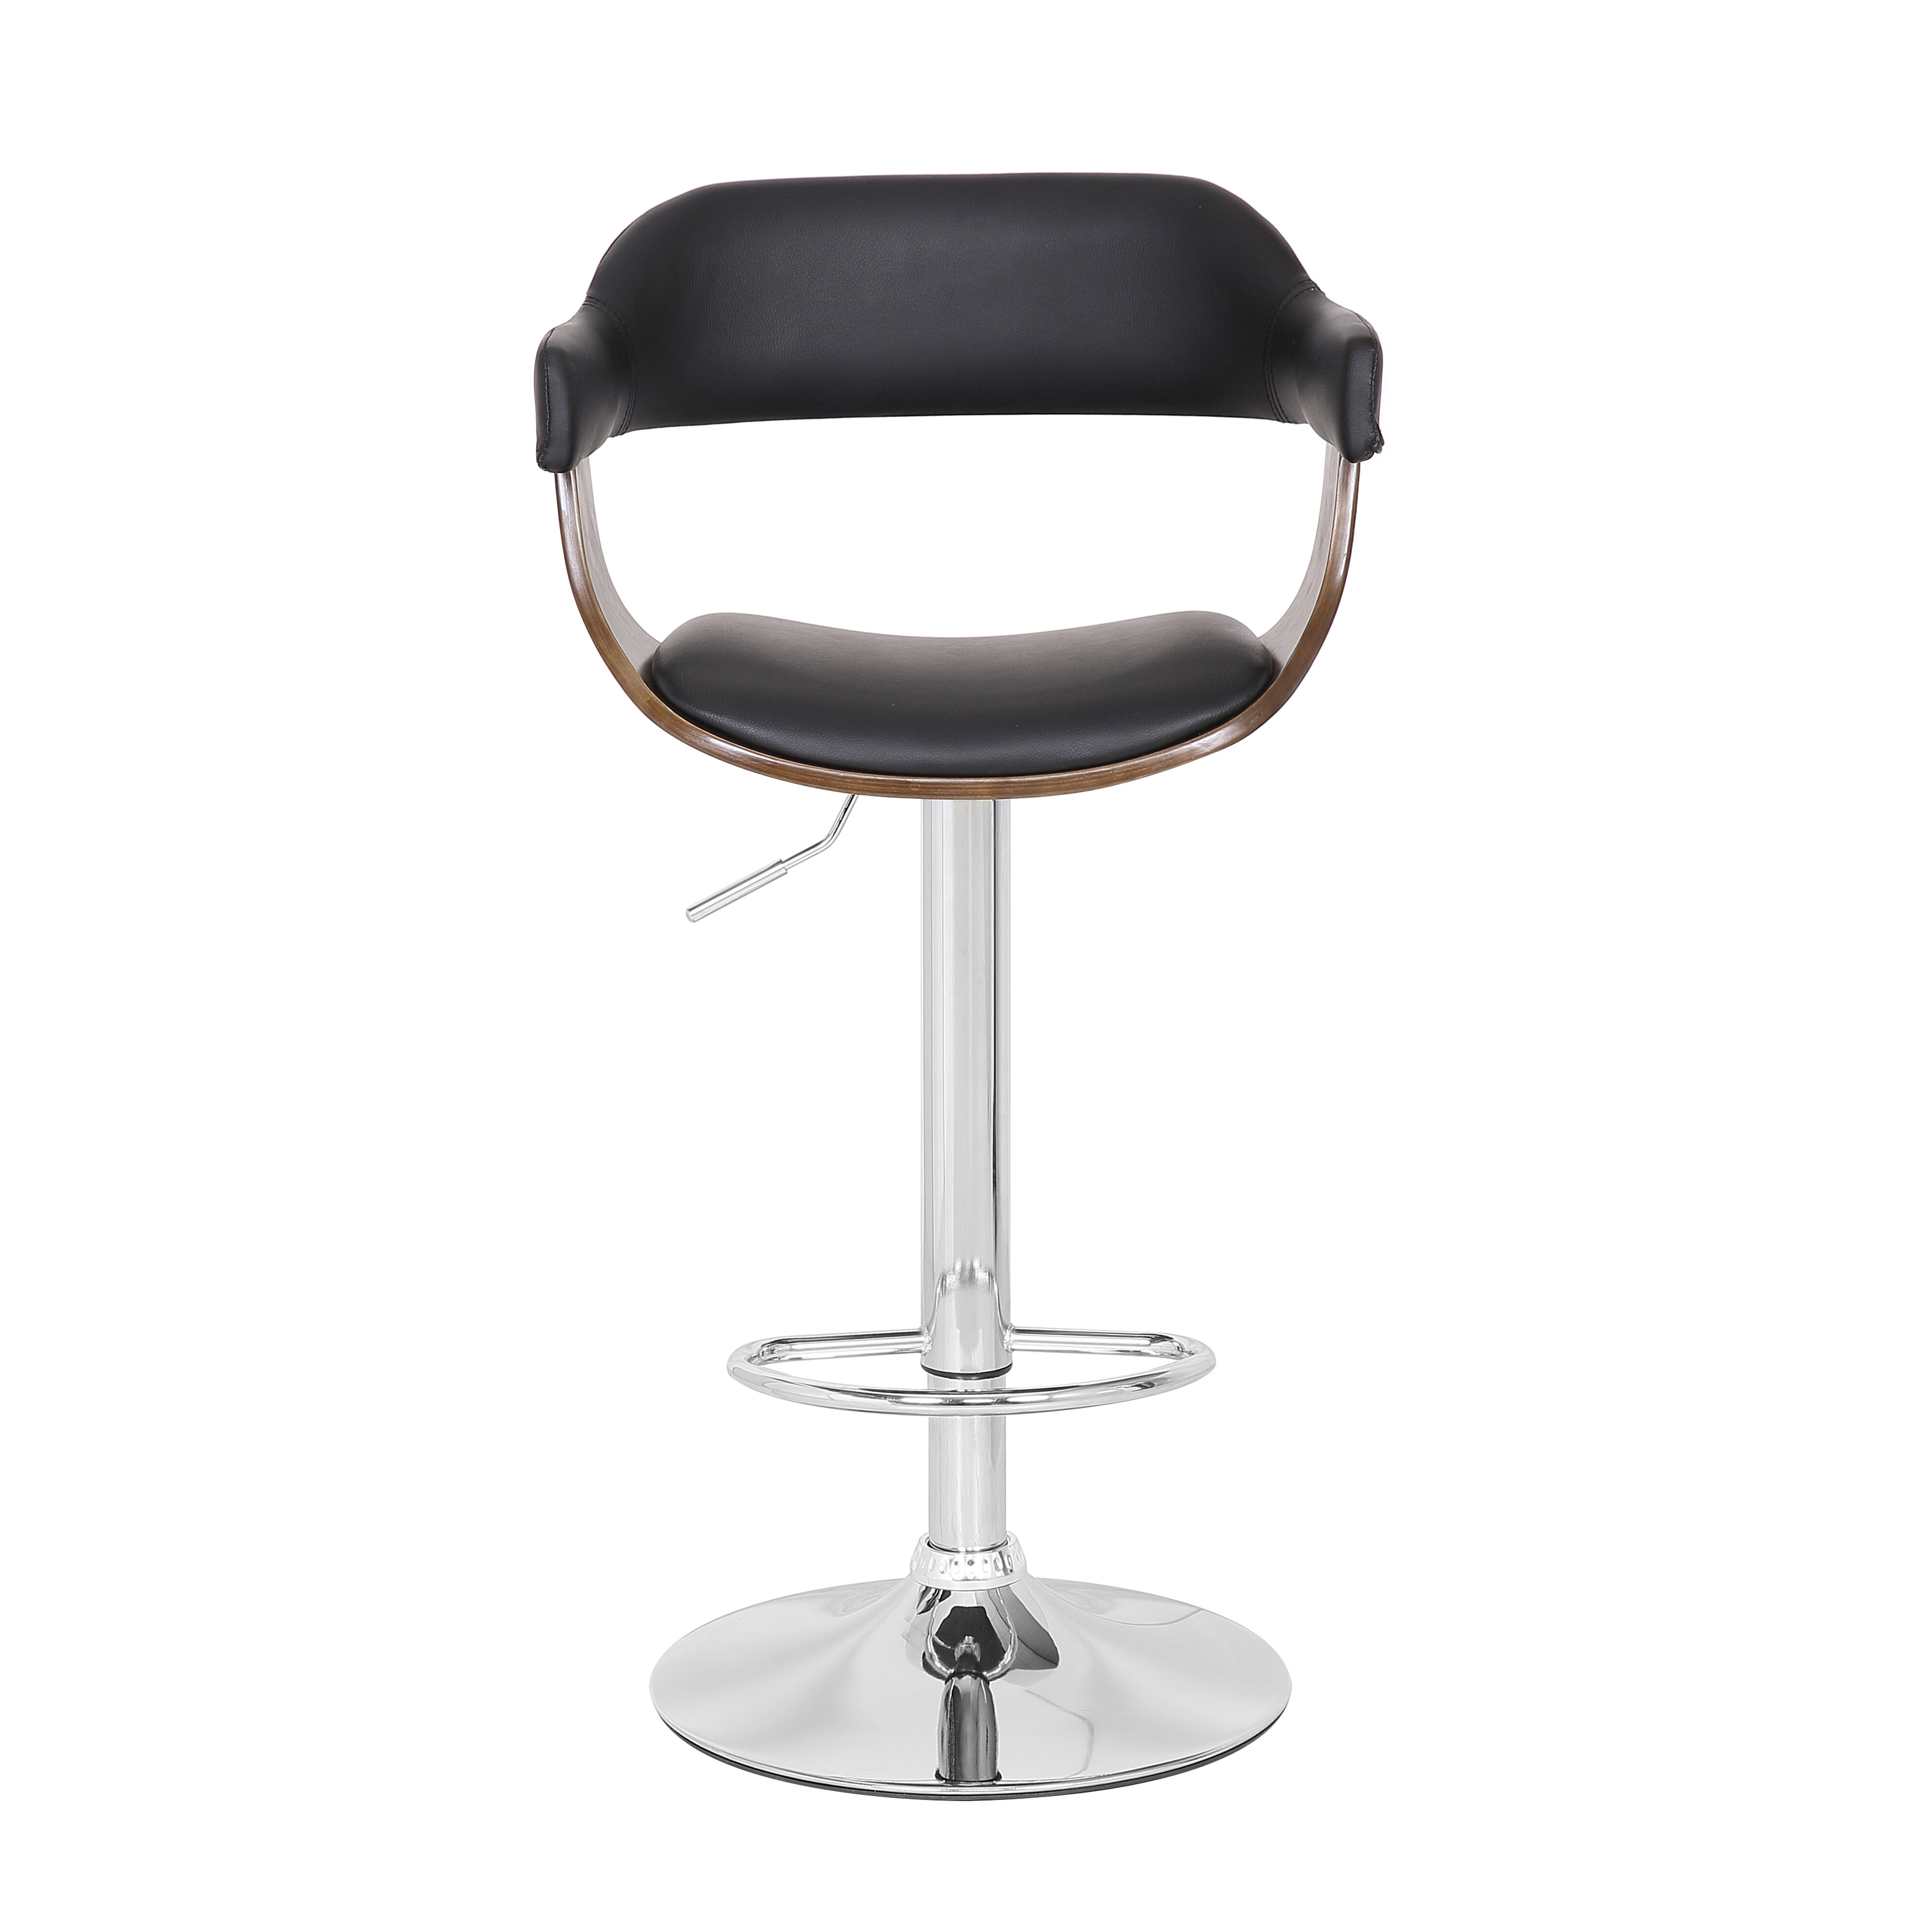 Astonishing Industrial Pedestal Bar Stools Youll Love In 2019 Wayfair Alphanode Cool Chair Designs And Ideas Alphanodeonline